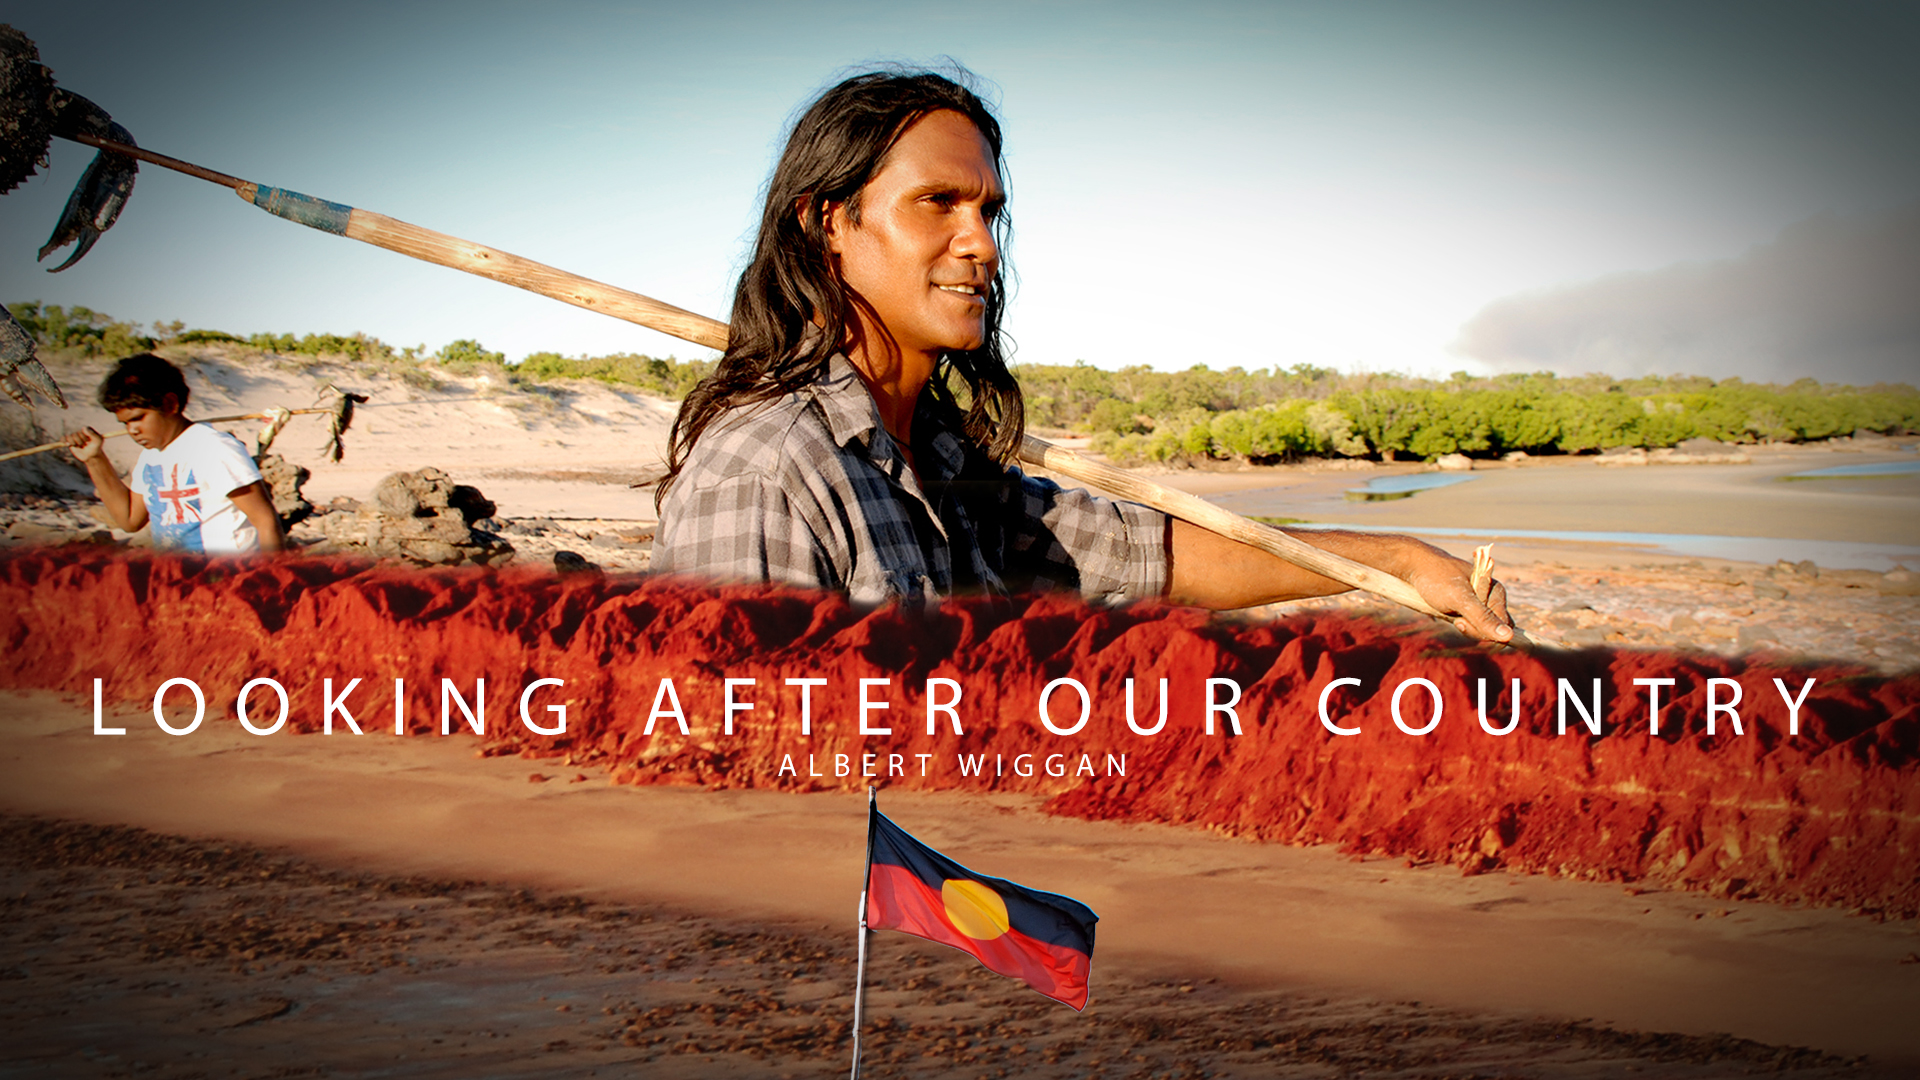 Looking After Our Country - One man shares the wisdom of the world's oldest culture